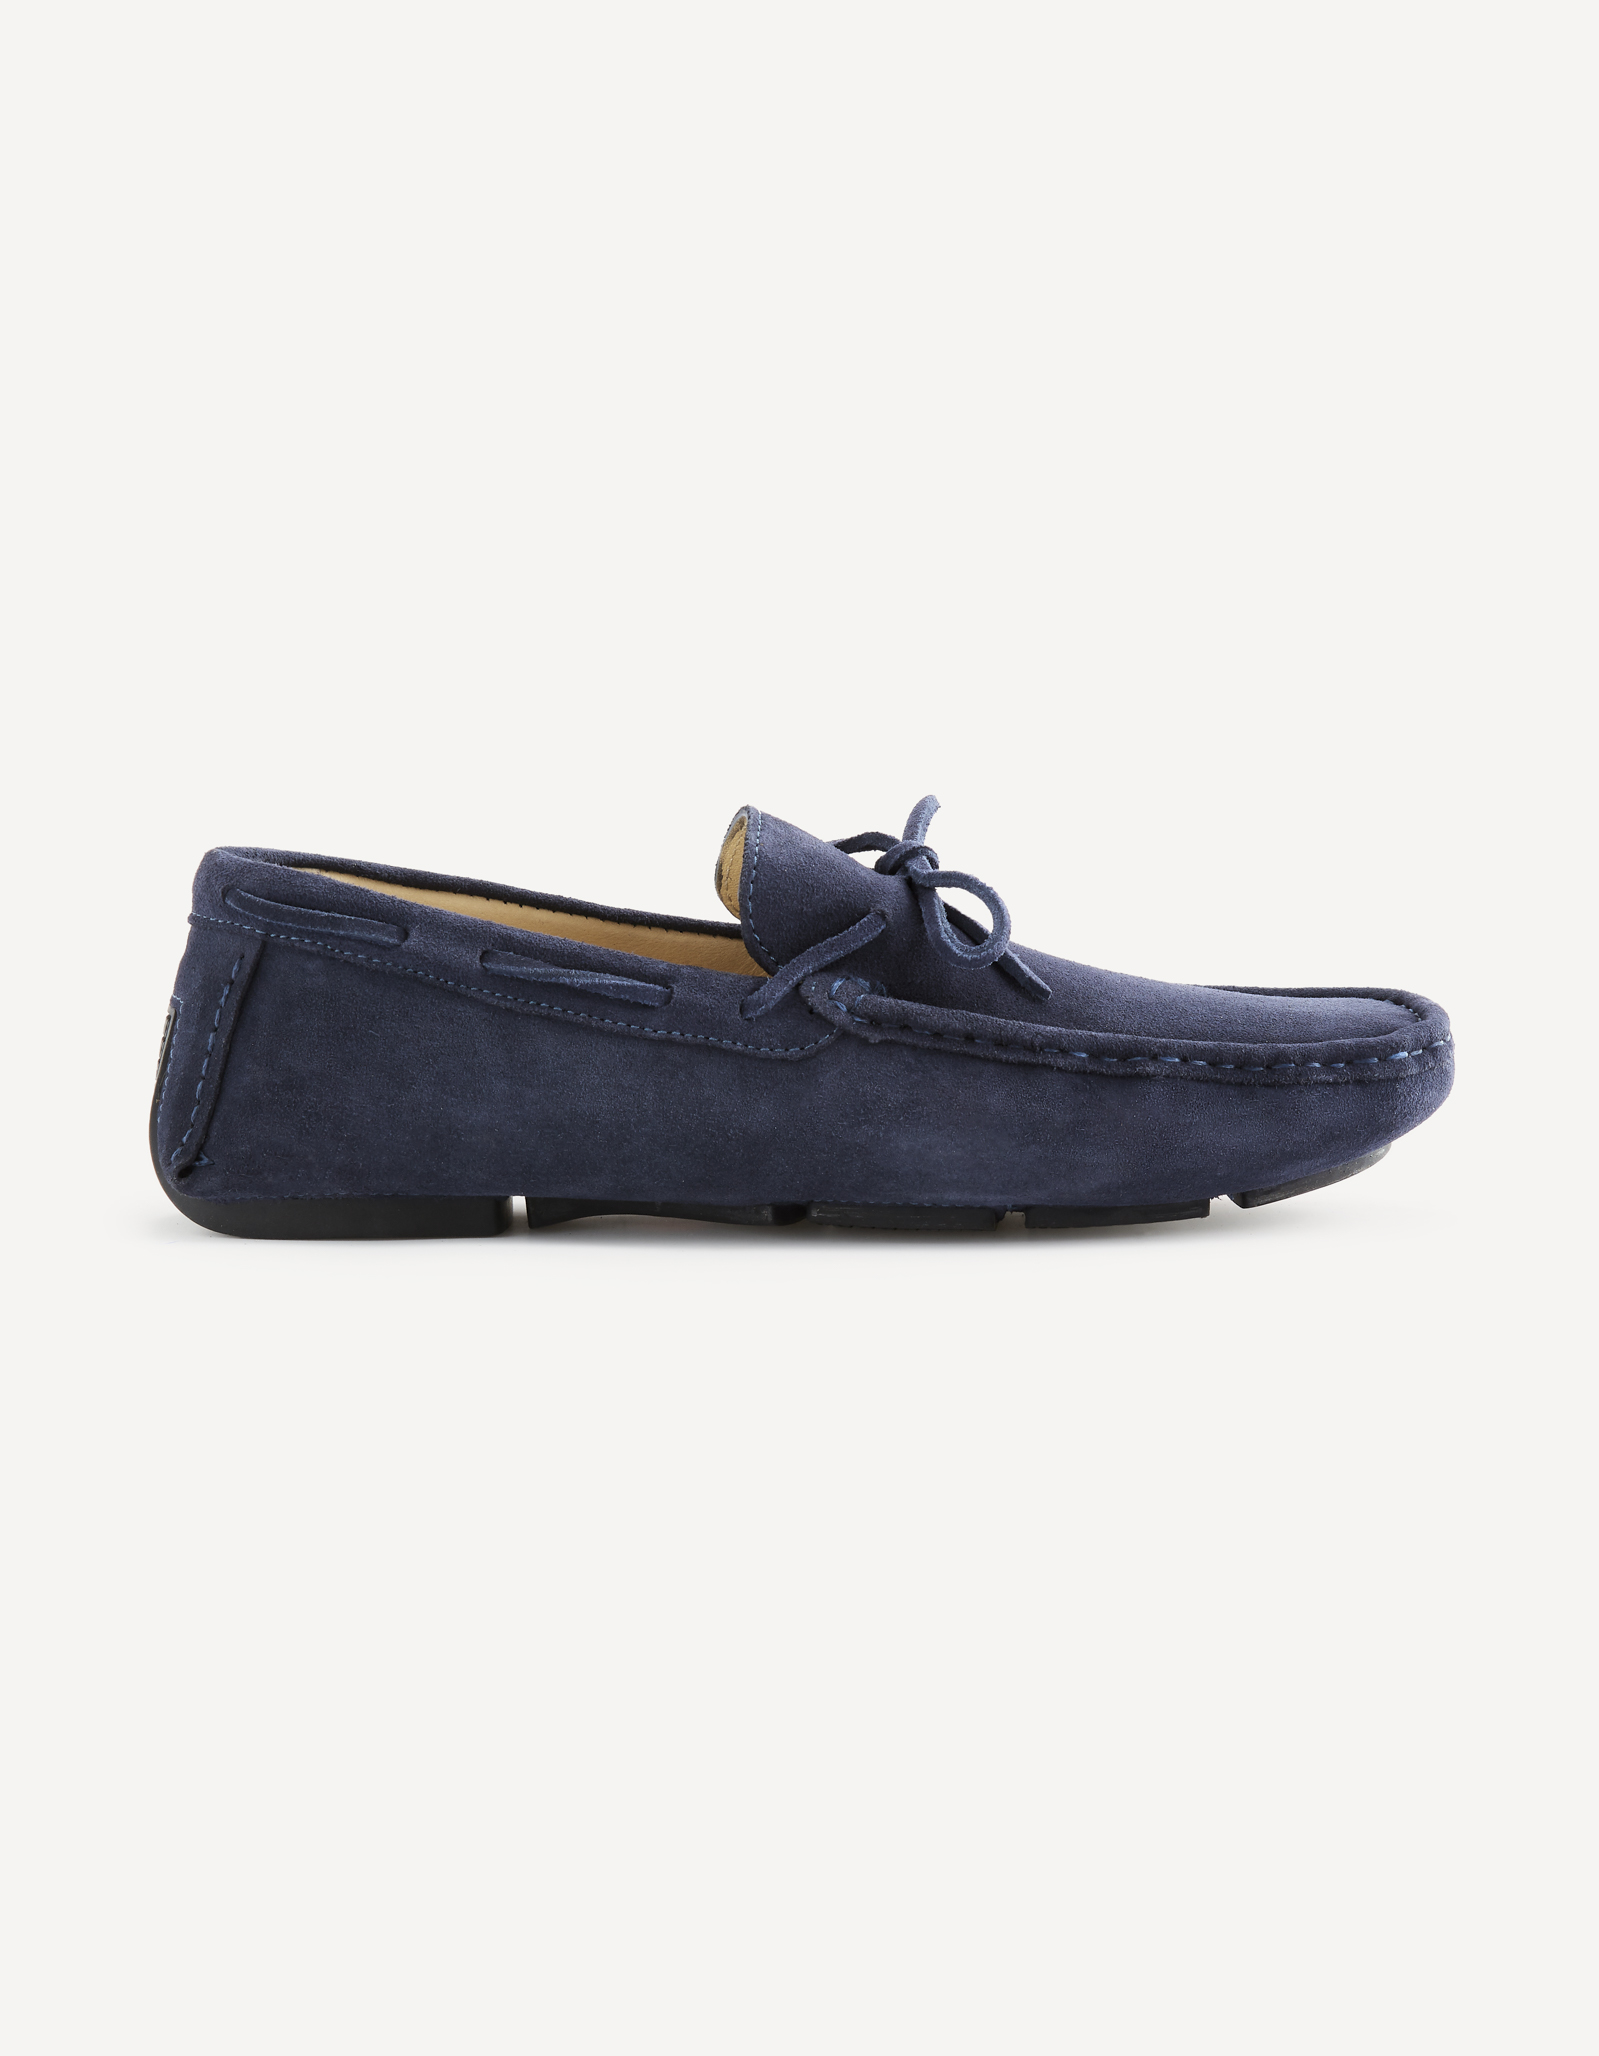 RYLOAFER_NAVY_1